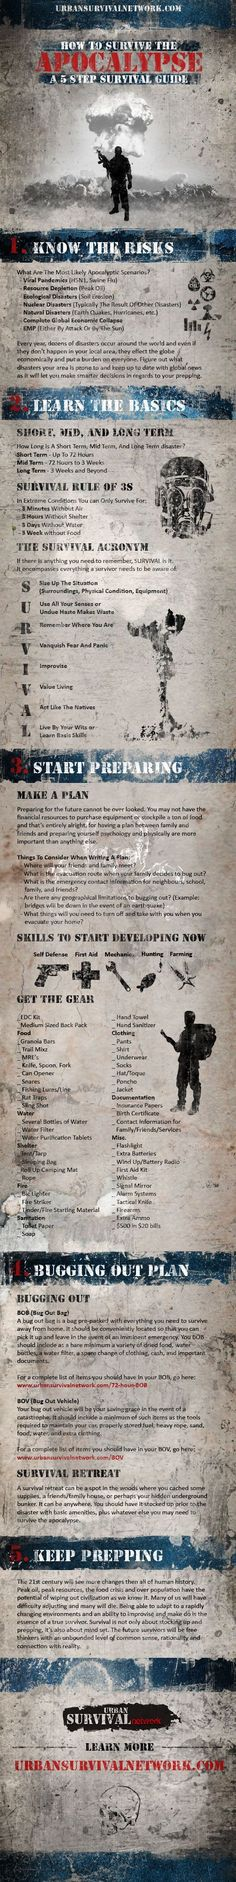 How to Survive the Apocalypse | survivalist ultimate guide. | http://survivallife.com/2014/03/03/survival-infographics/